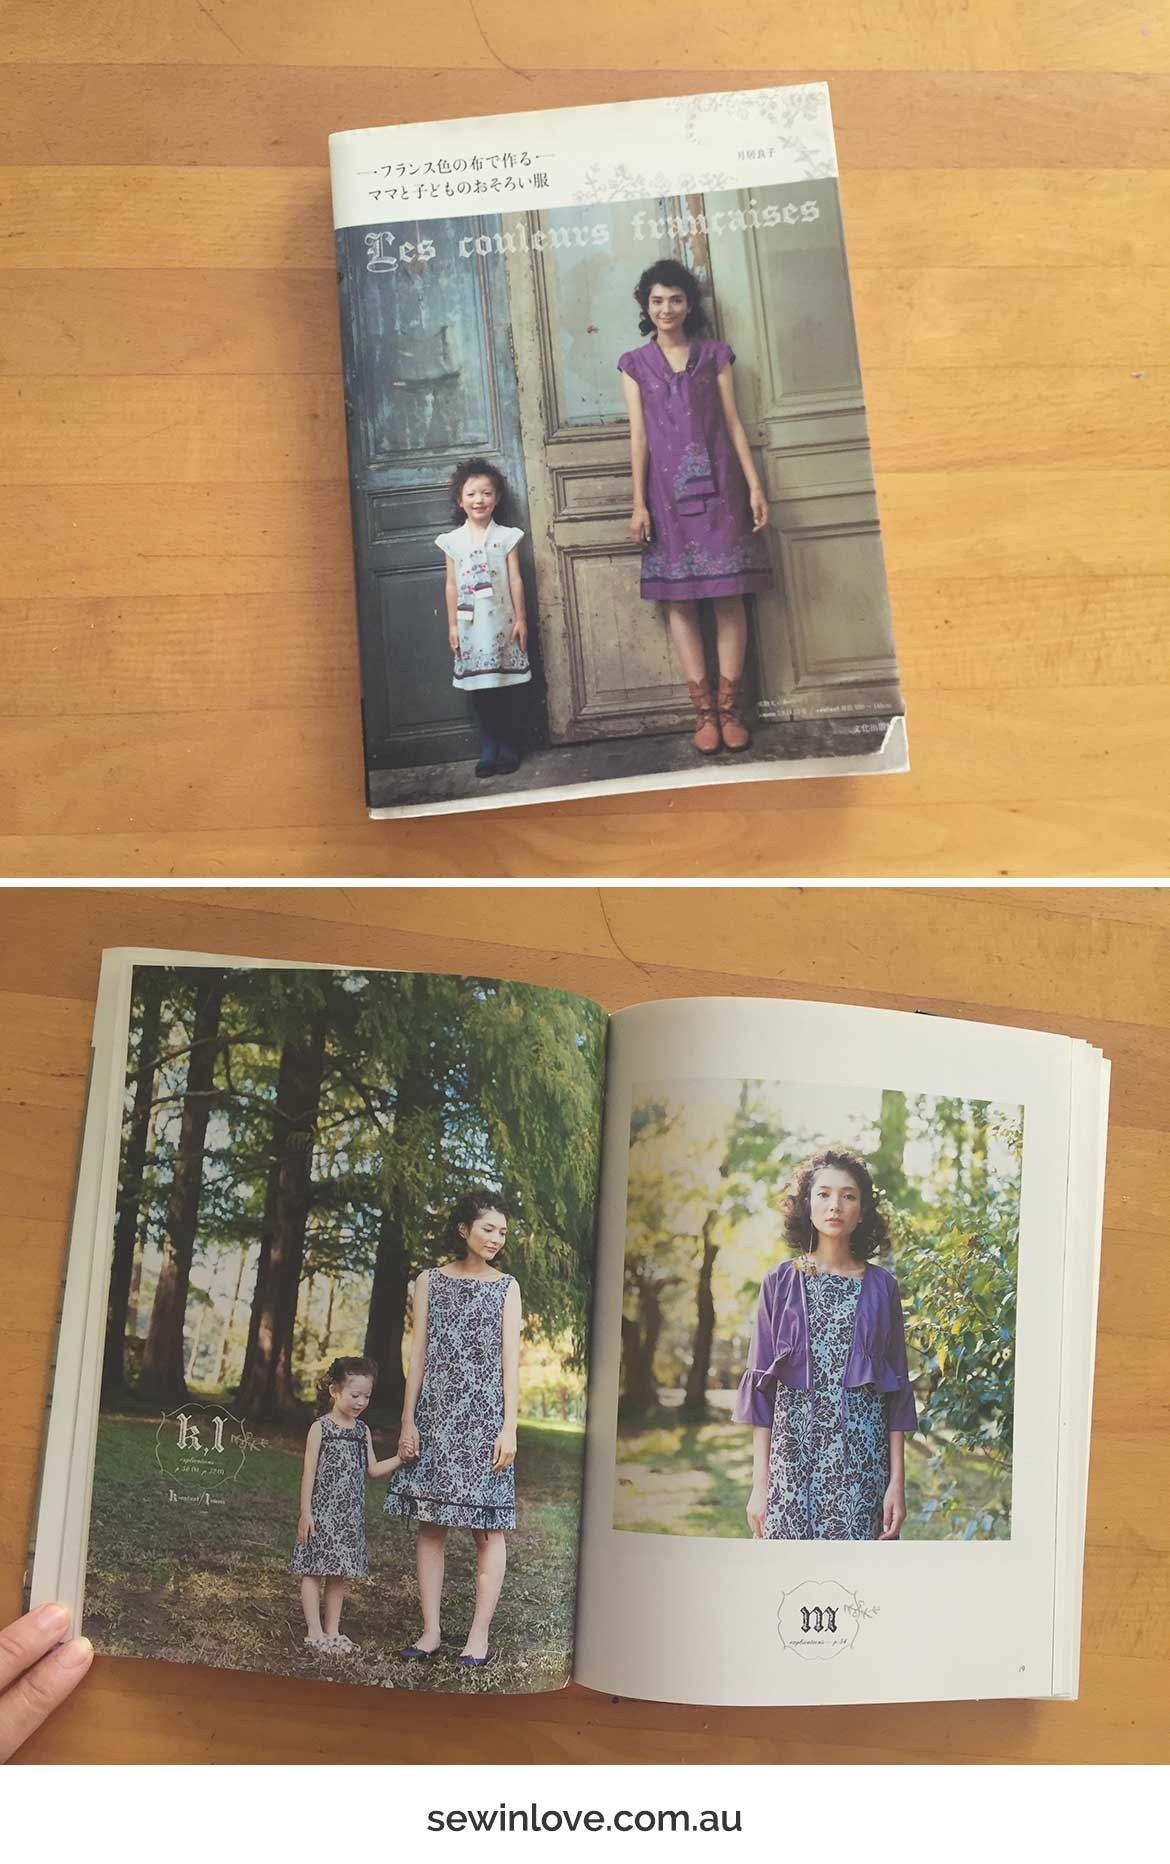 Mother Daughter Dress Patterns | This Japanese sewing pattern book is full of cute matching oufits to sew for mamas and bubs. Click through for a book review!